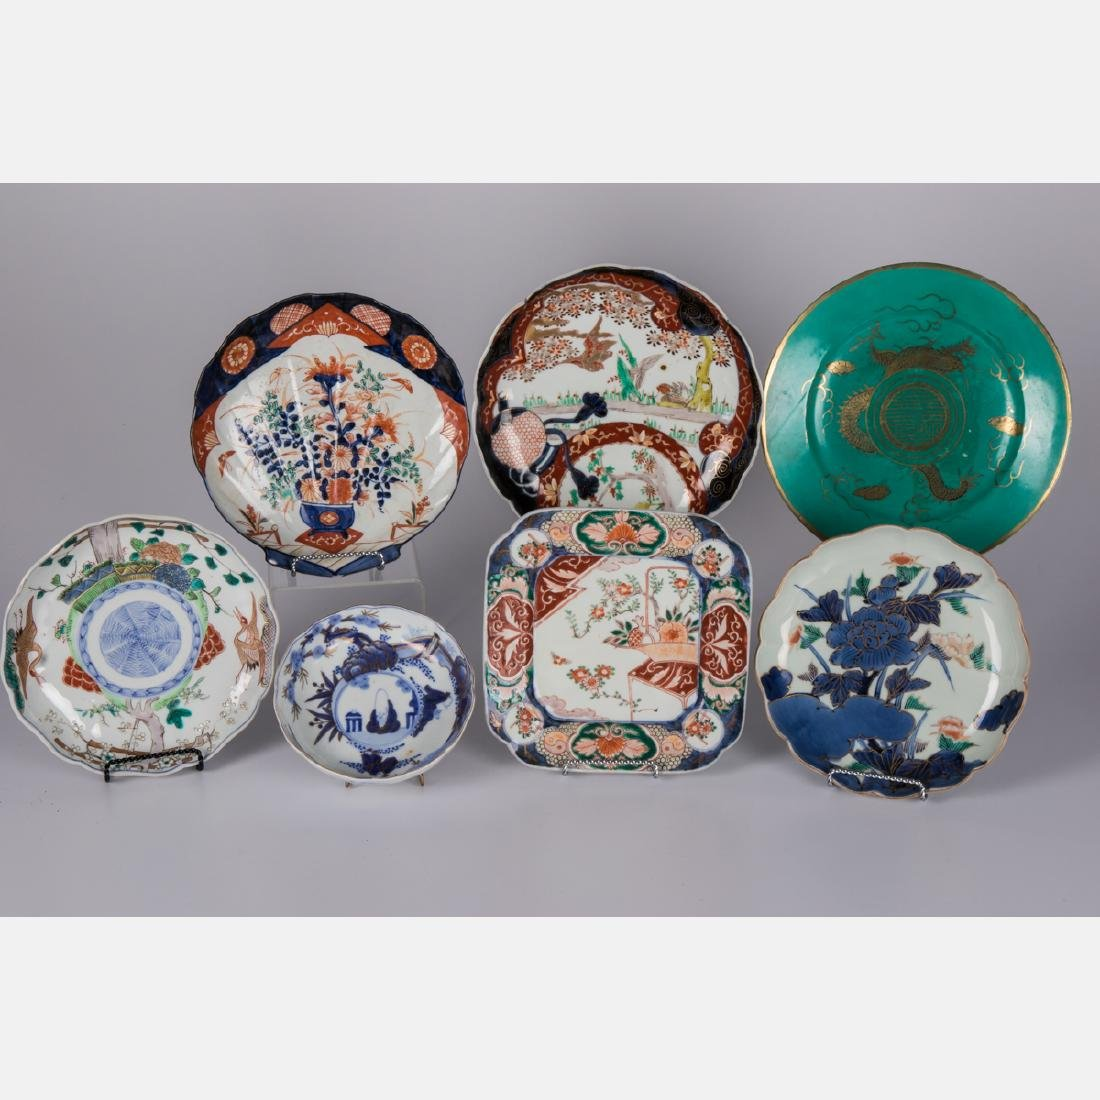 A Group of Six Japanese Imari Porcelain Serving Items,